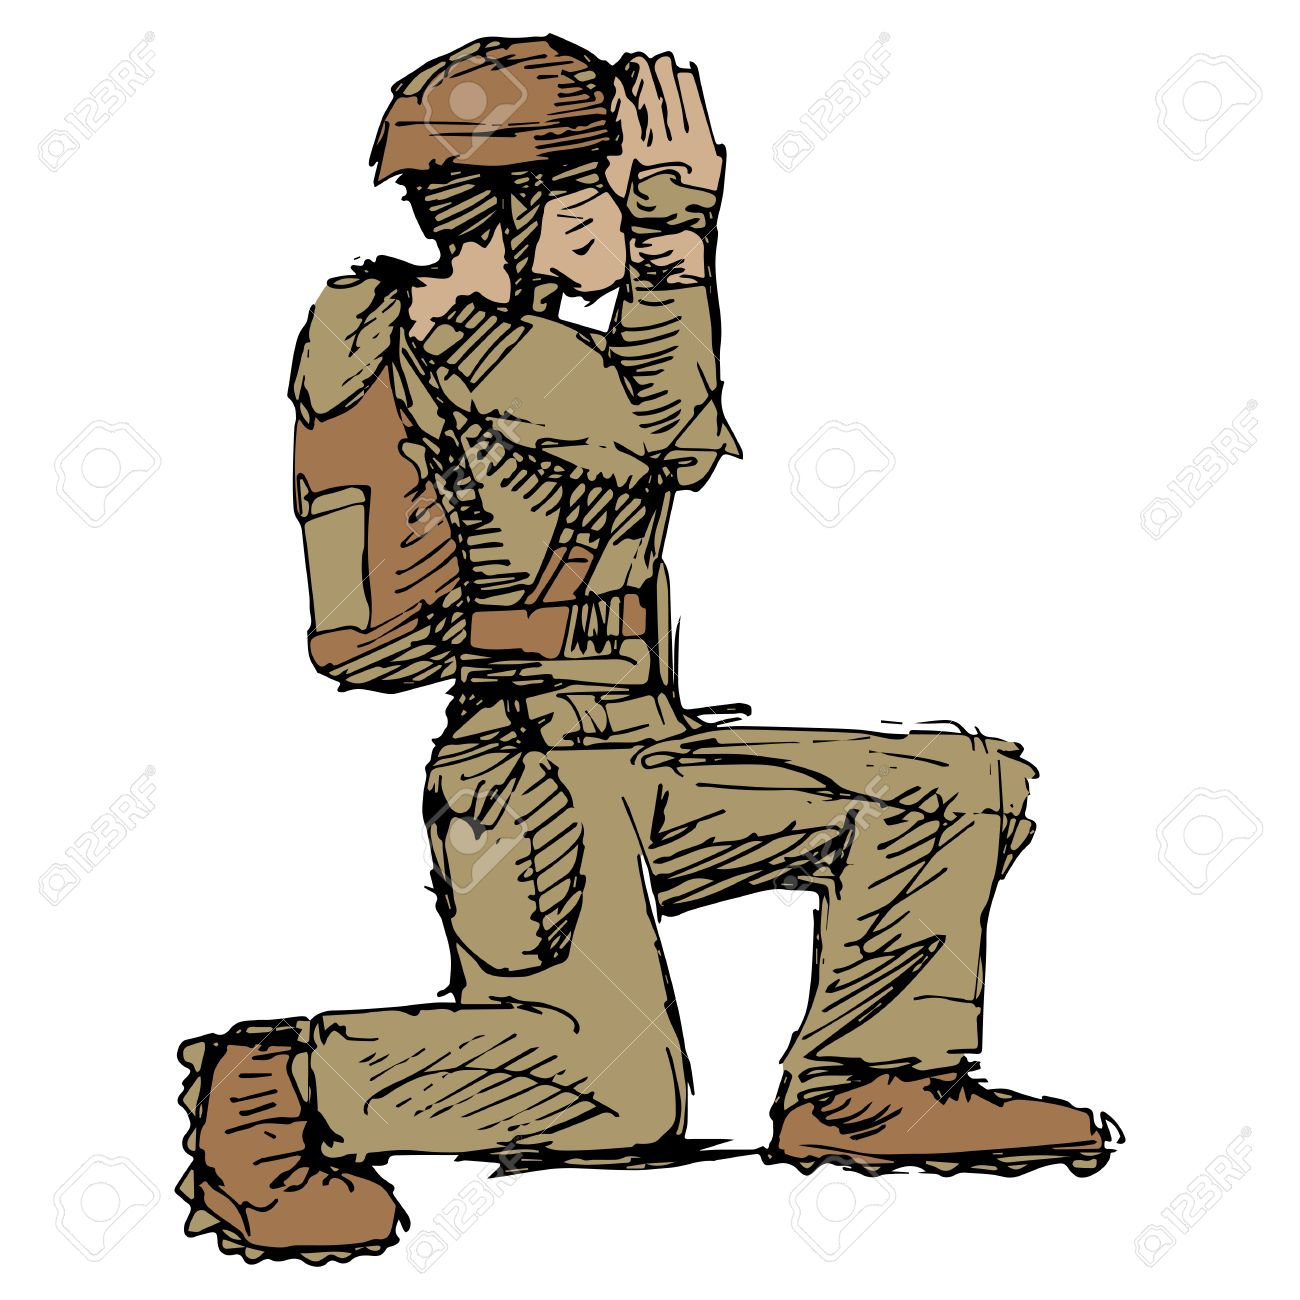 Soldier Kneeling In Prayer Clipart | Free download best Soldier